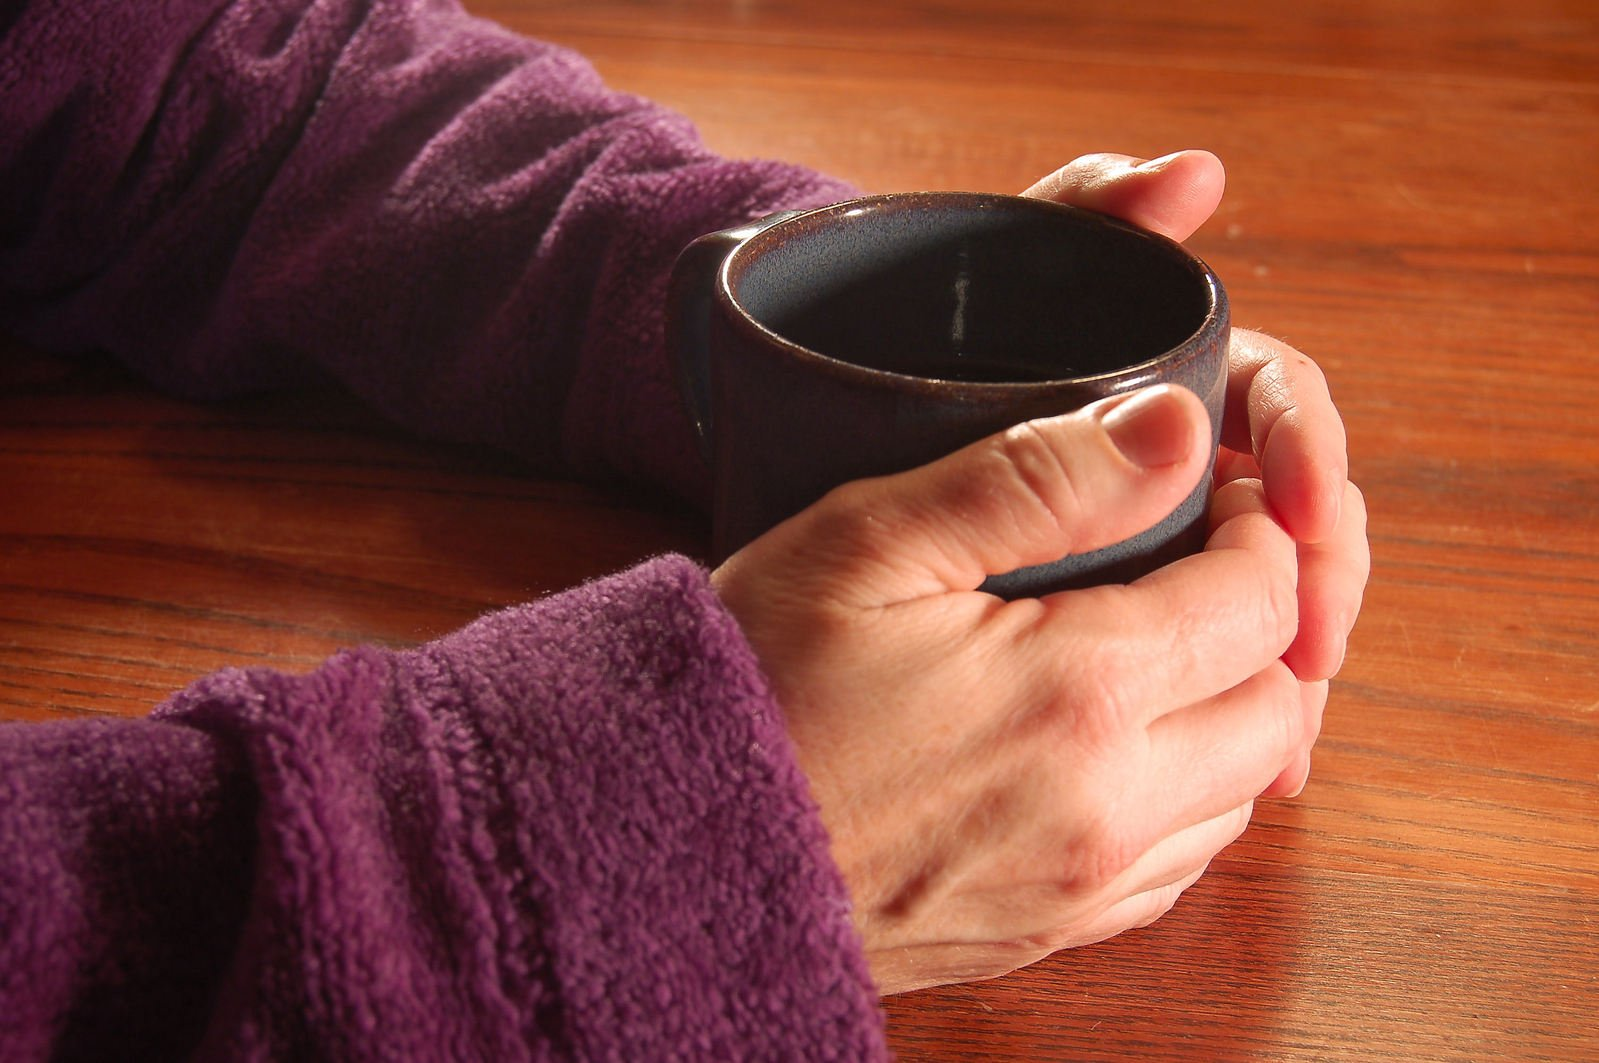 Hands holding a mug of tea, or maybe coffee, could even be hot chocolate!